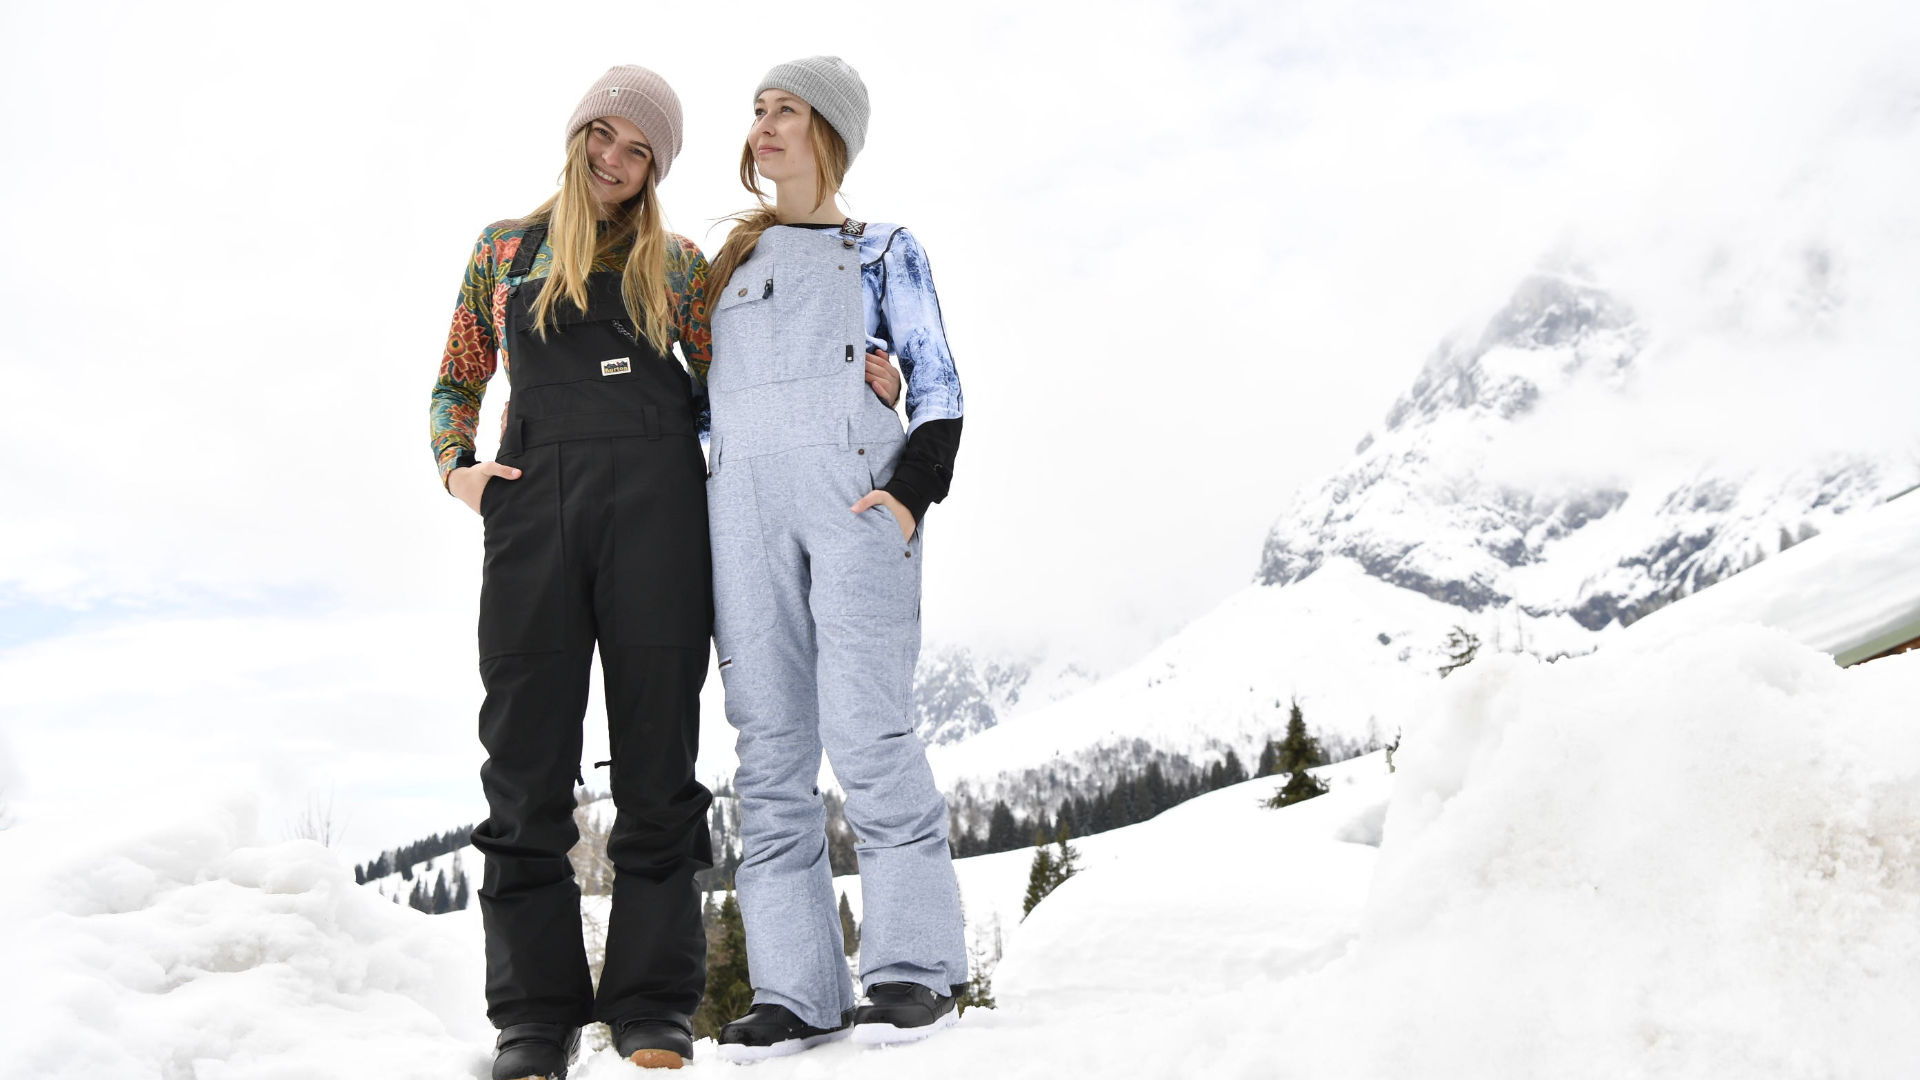 Two female snowboarders standing in snow on the moutain in snowboardpants